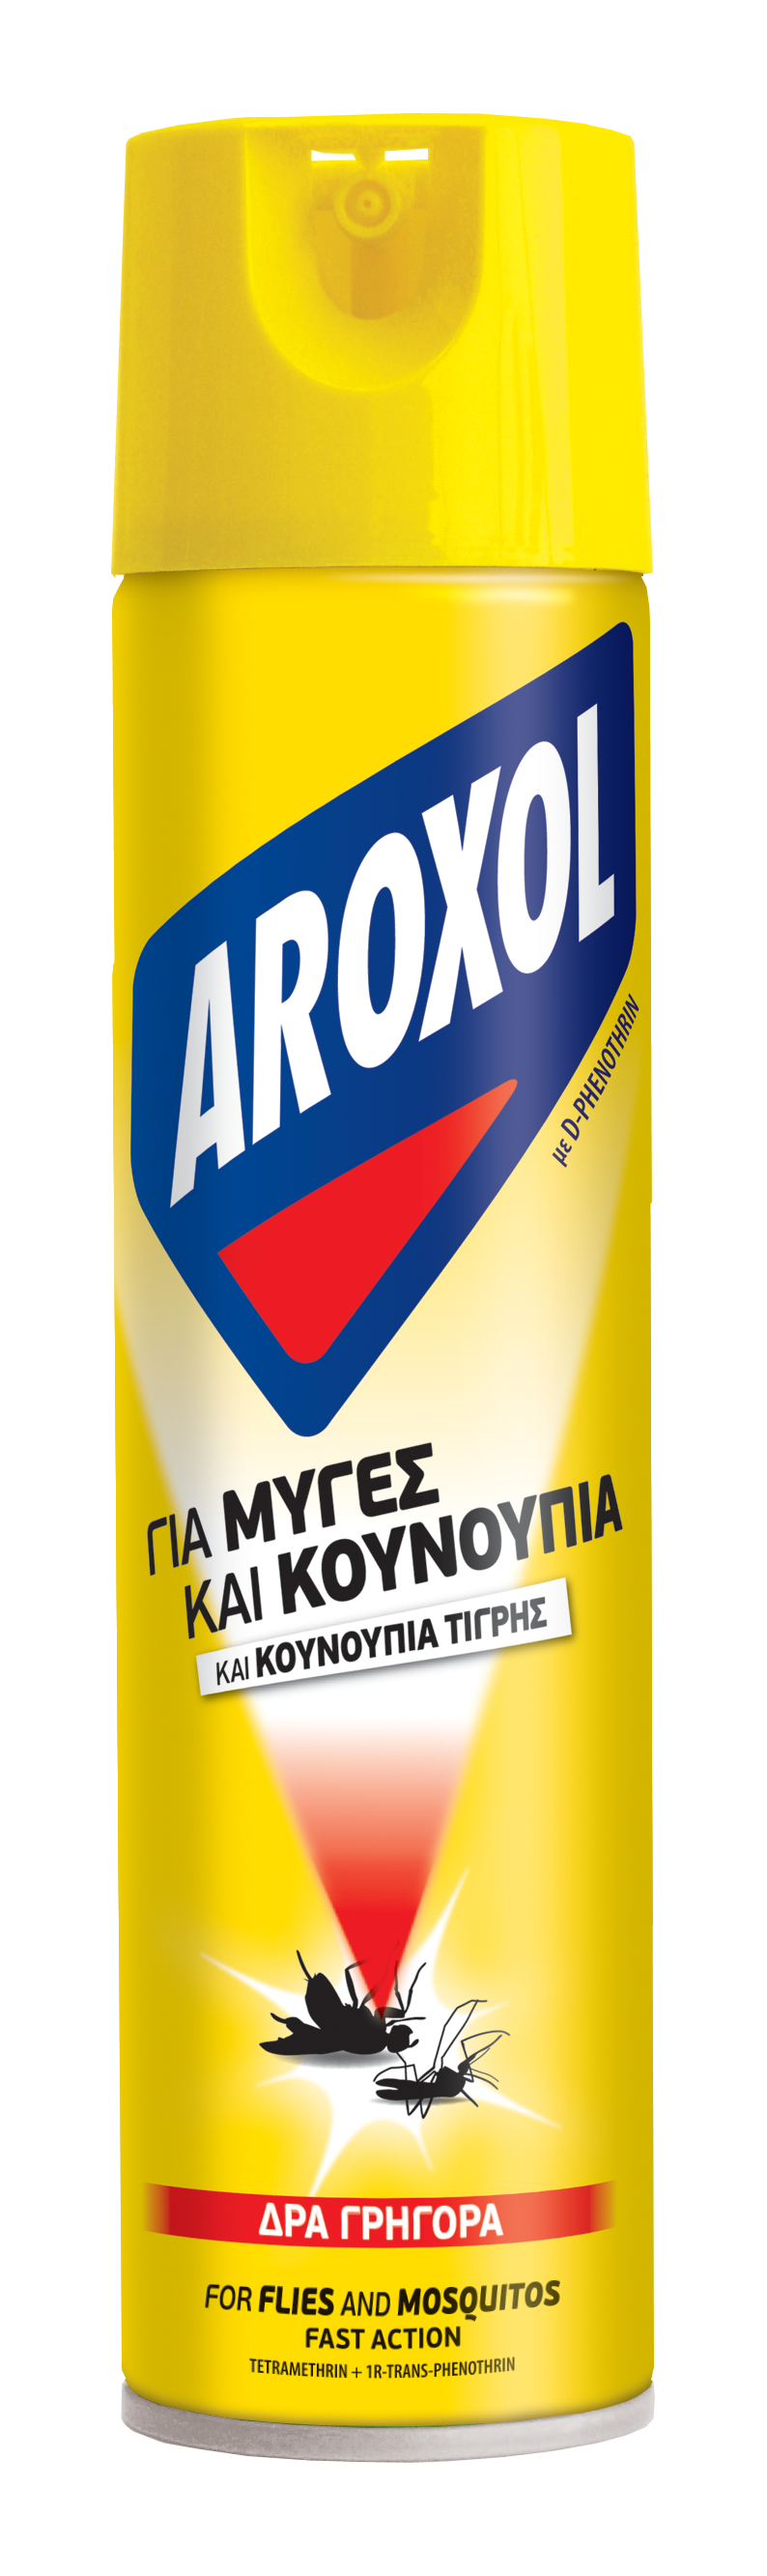 AROXOL FOR FLYING INSECTS 300ML